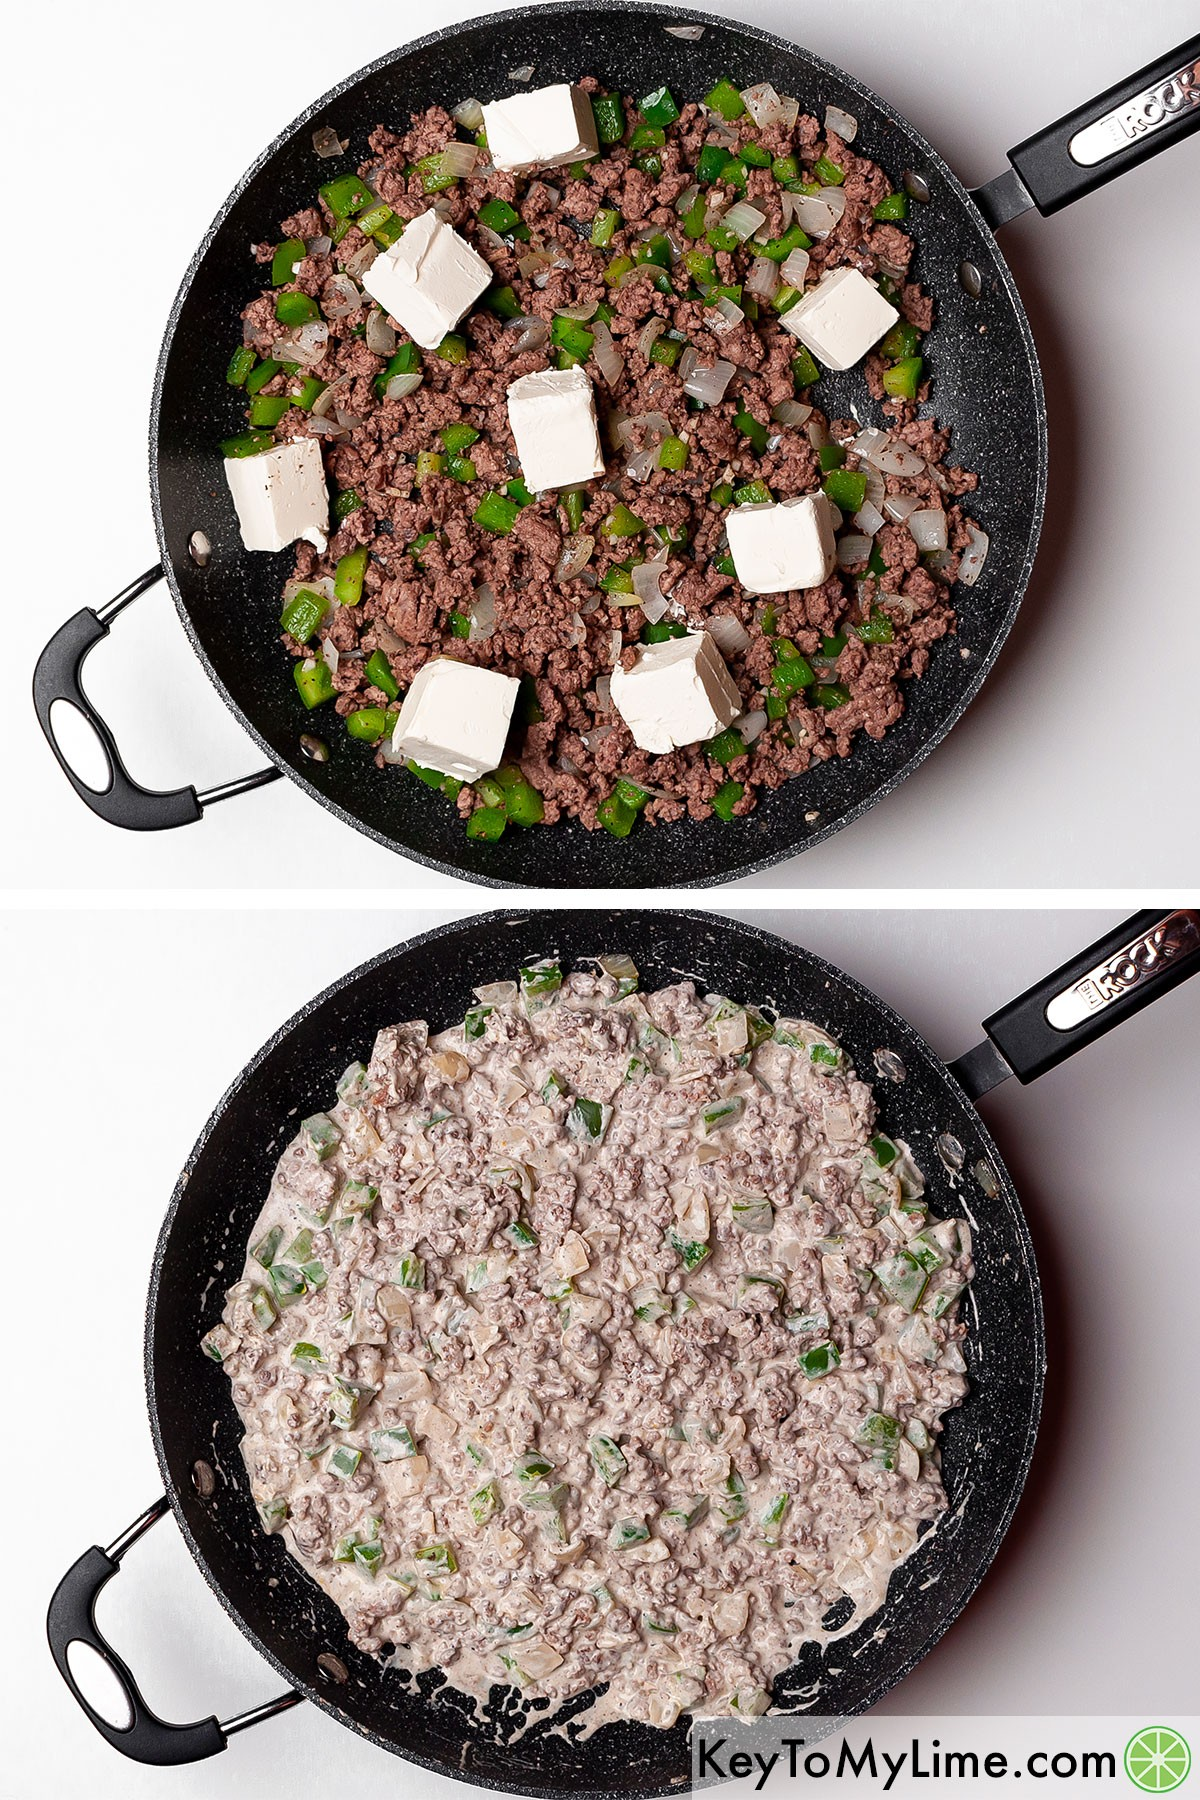 Melting cream cheese into a ground beef, onion, and bell pepper mixture.